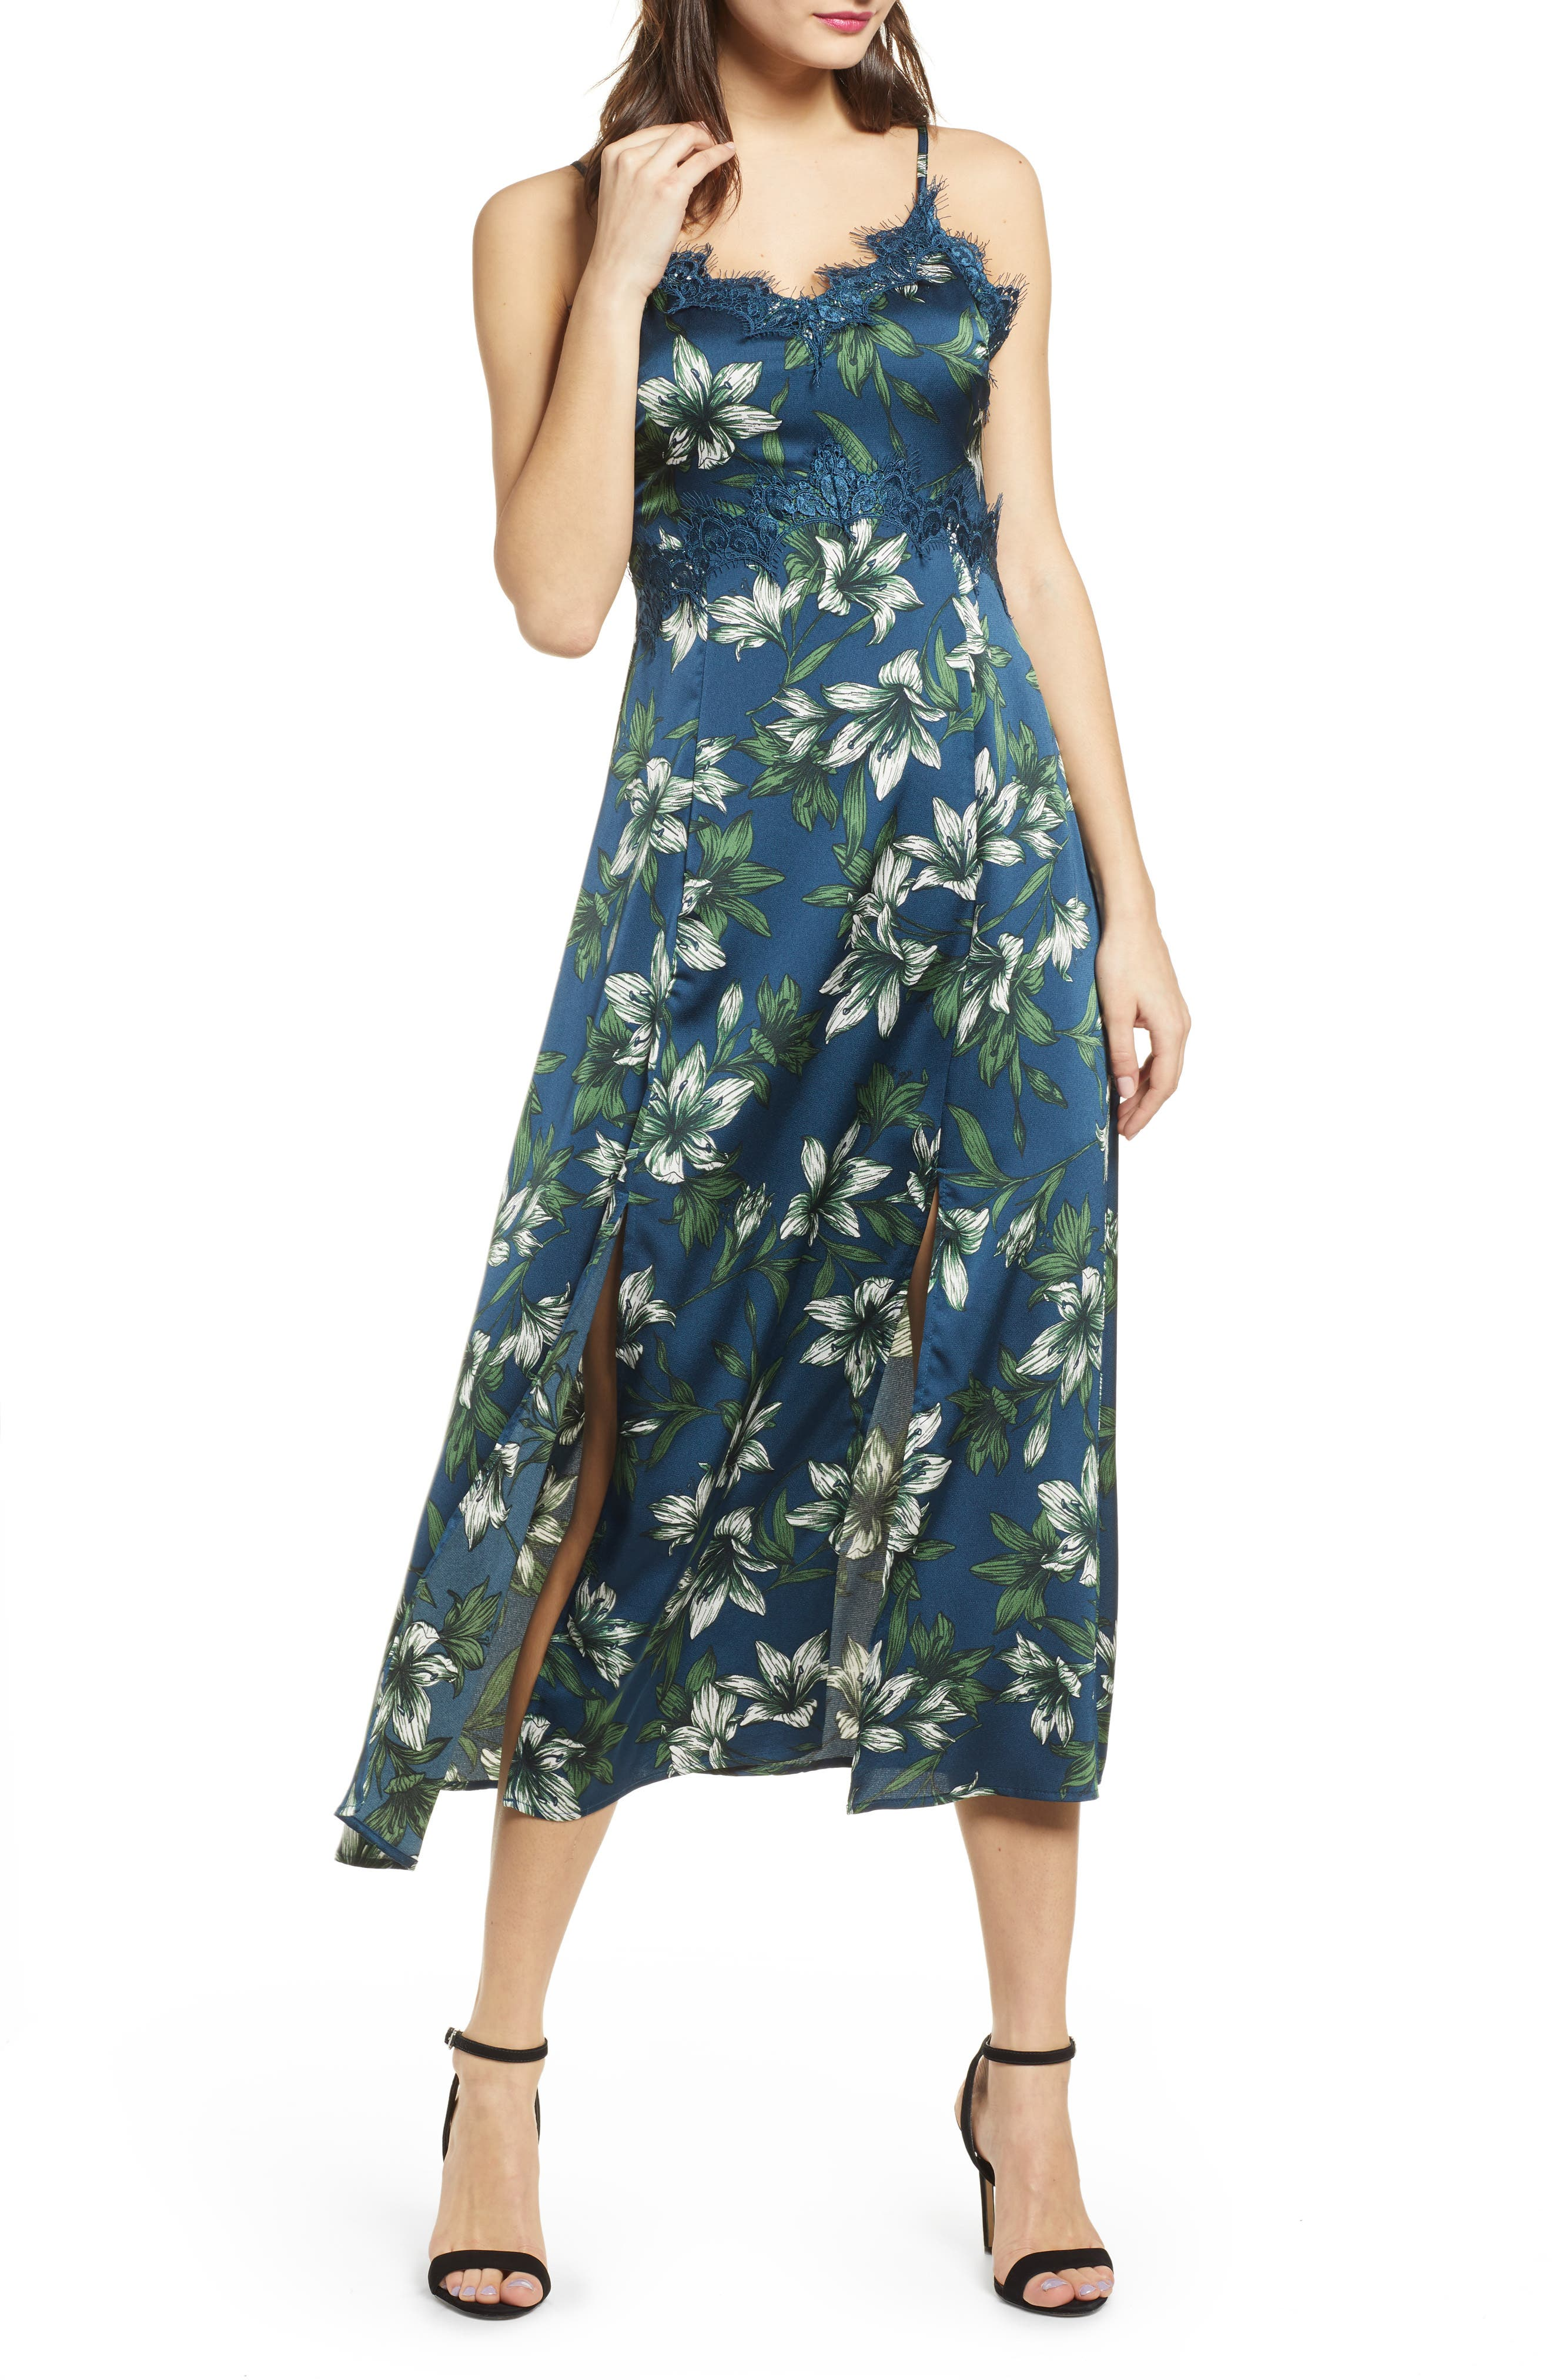 J.o.a. Lace Trim Sleeveless Midi Dress, Blue